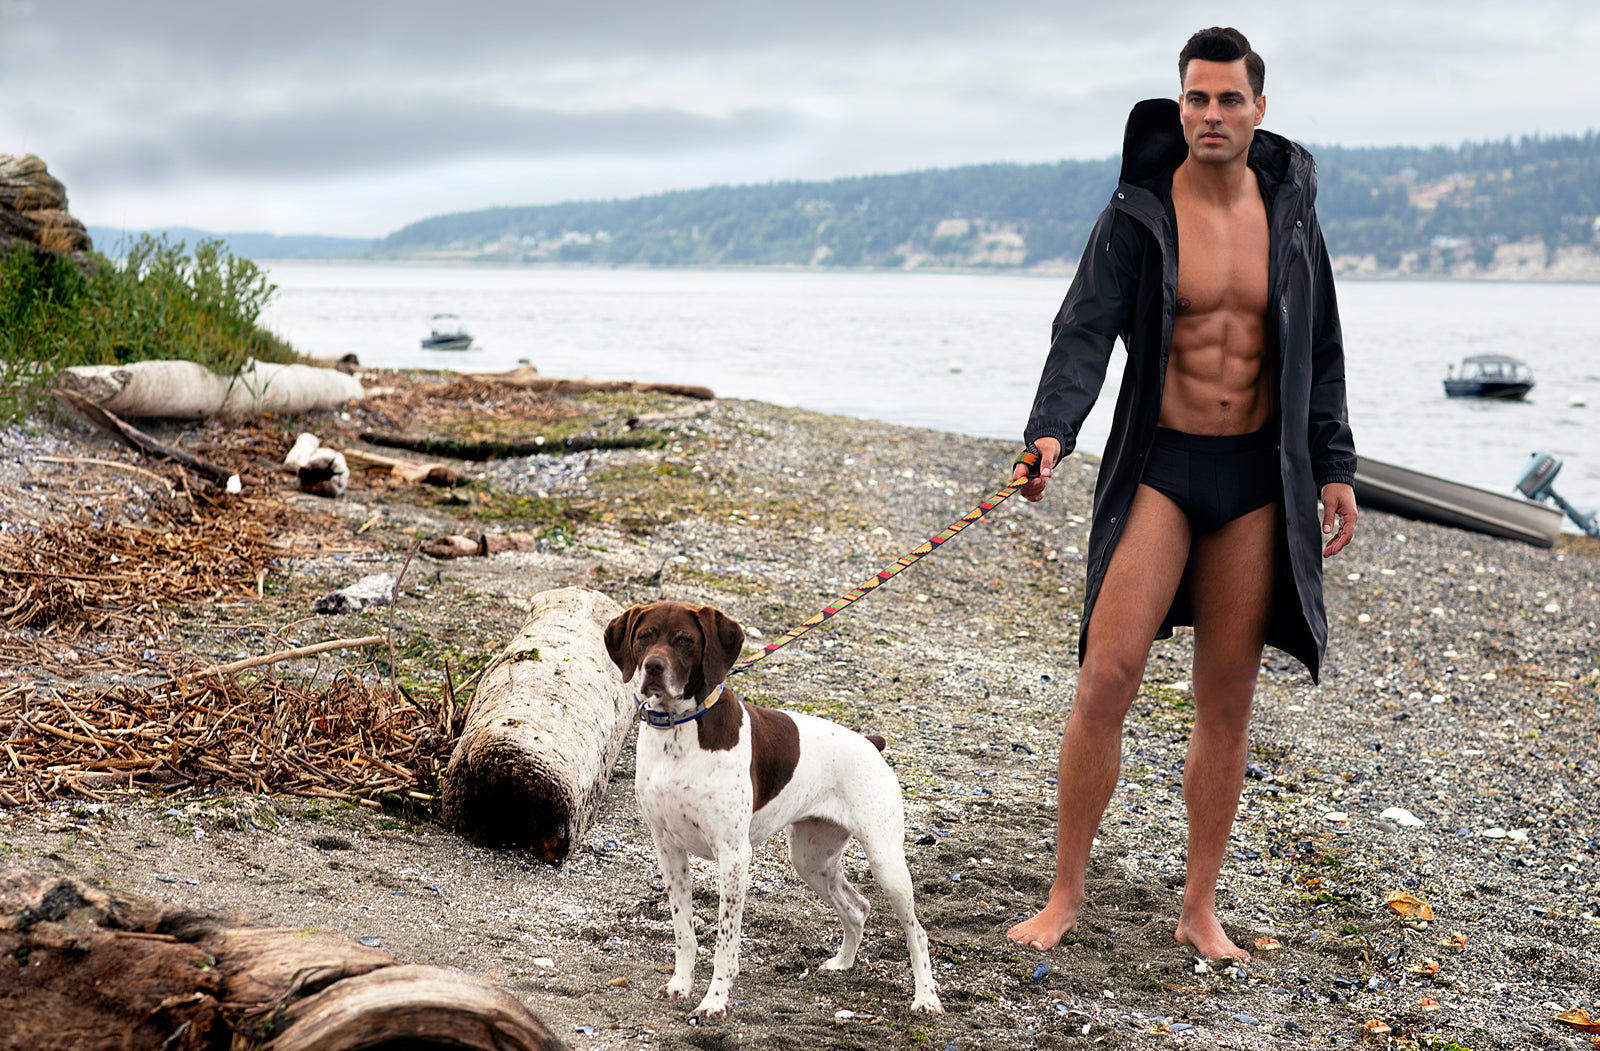 Matthew Konsmo modeling underwear in raincoat with dog on a leash while on the rocky beach in Camano Washington